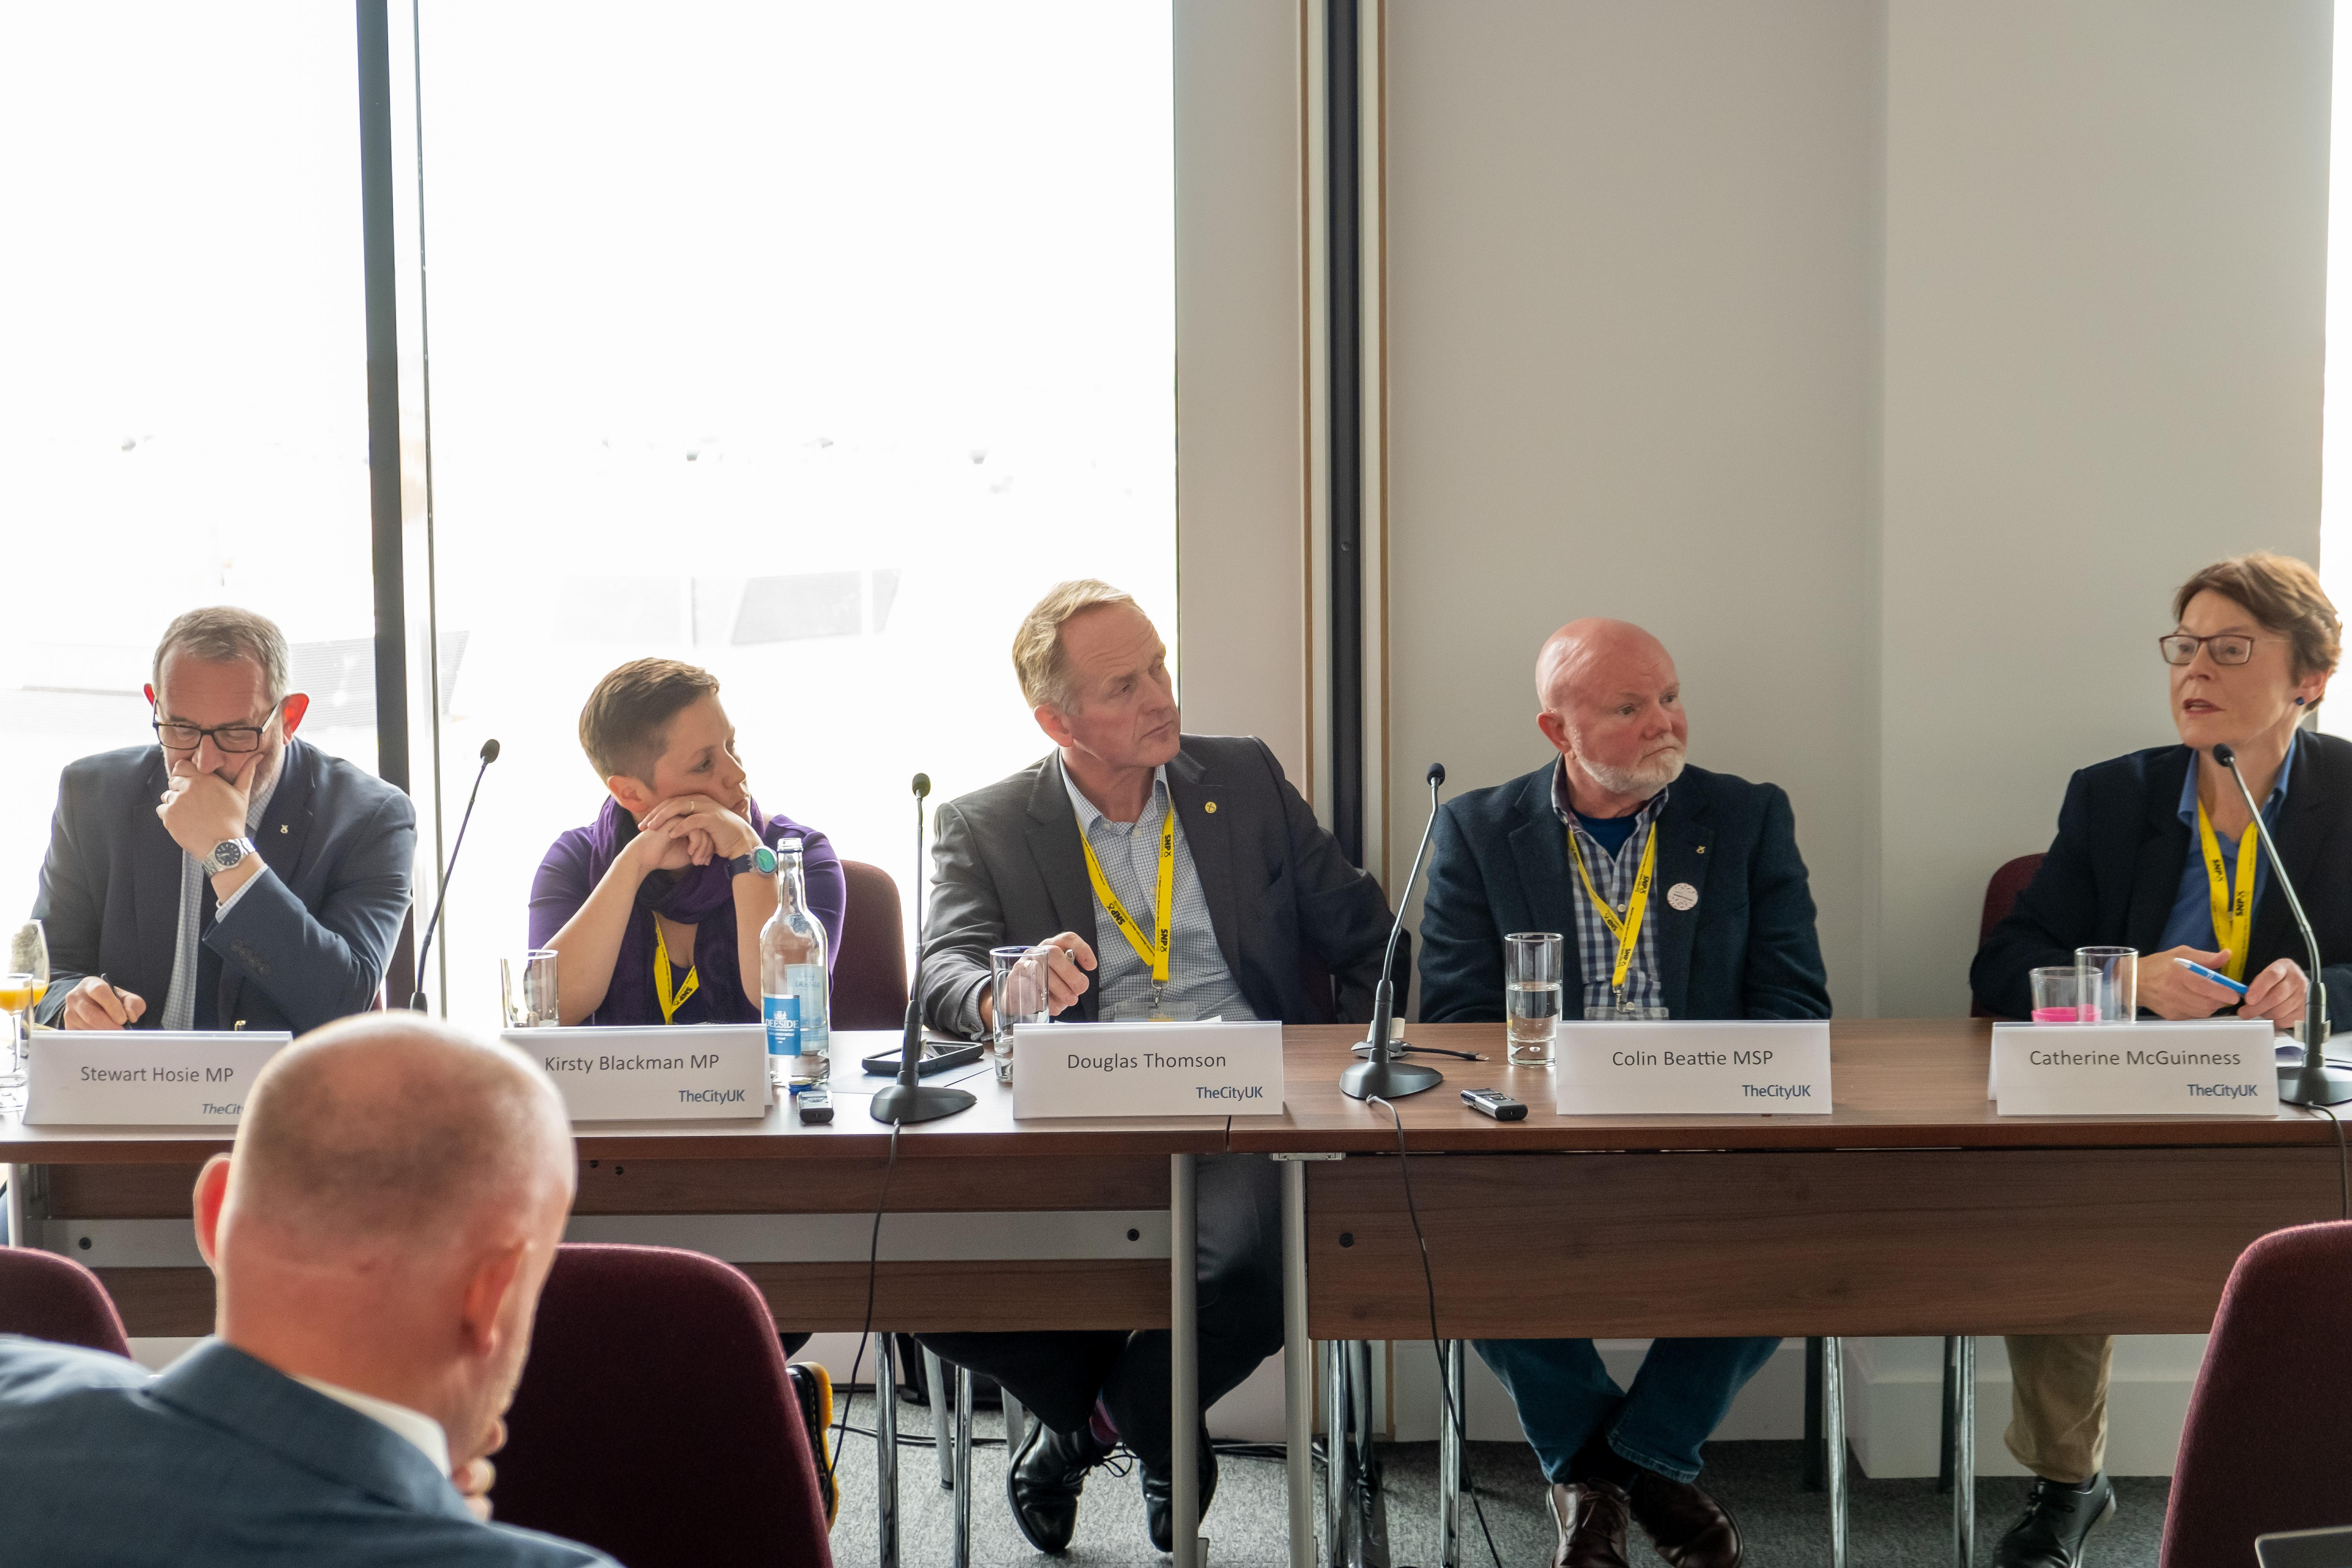 TheCityUK SNP Fringe discussing Innovating for the Future